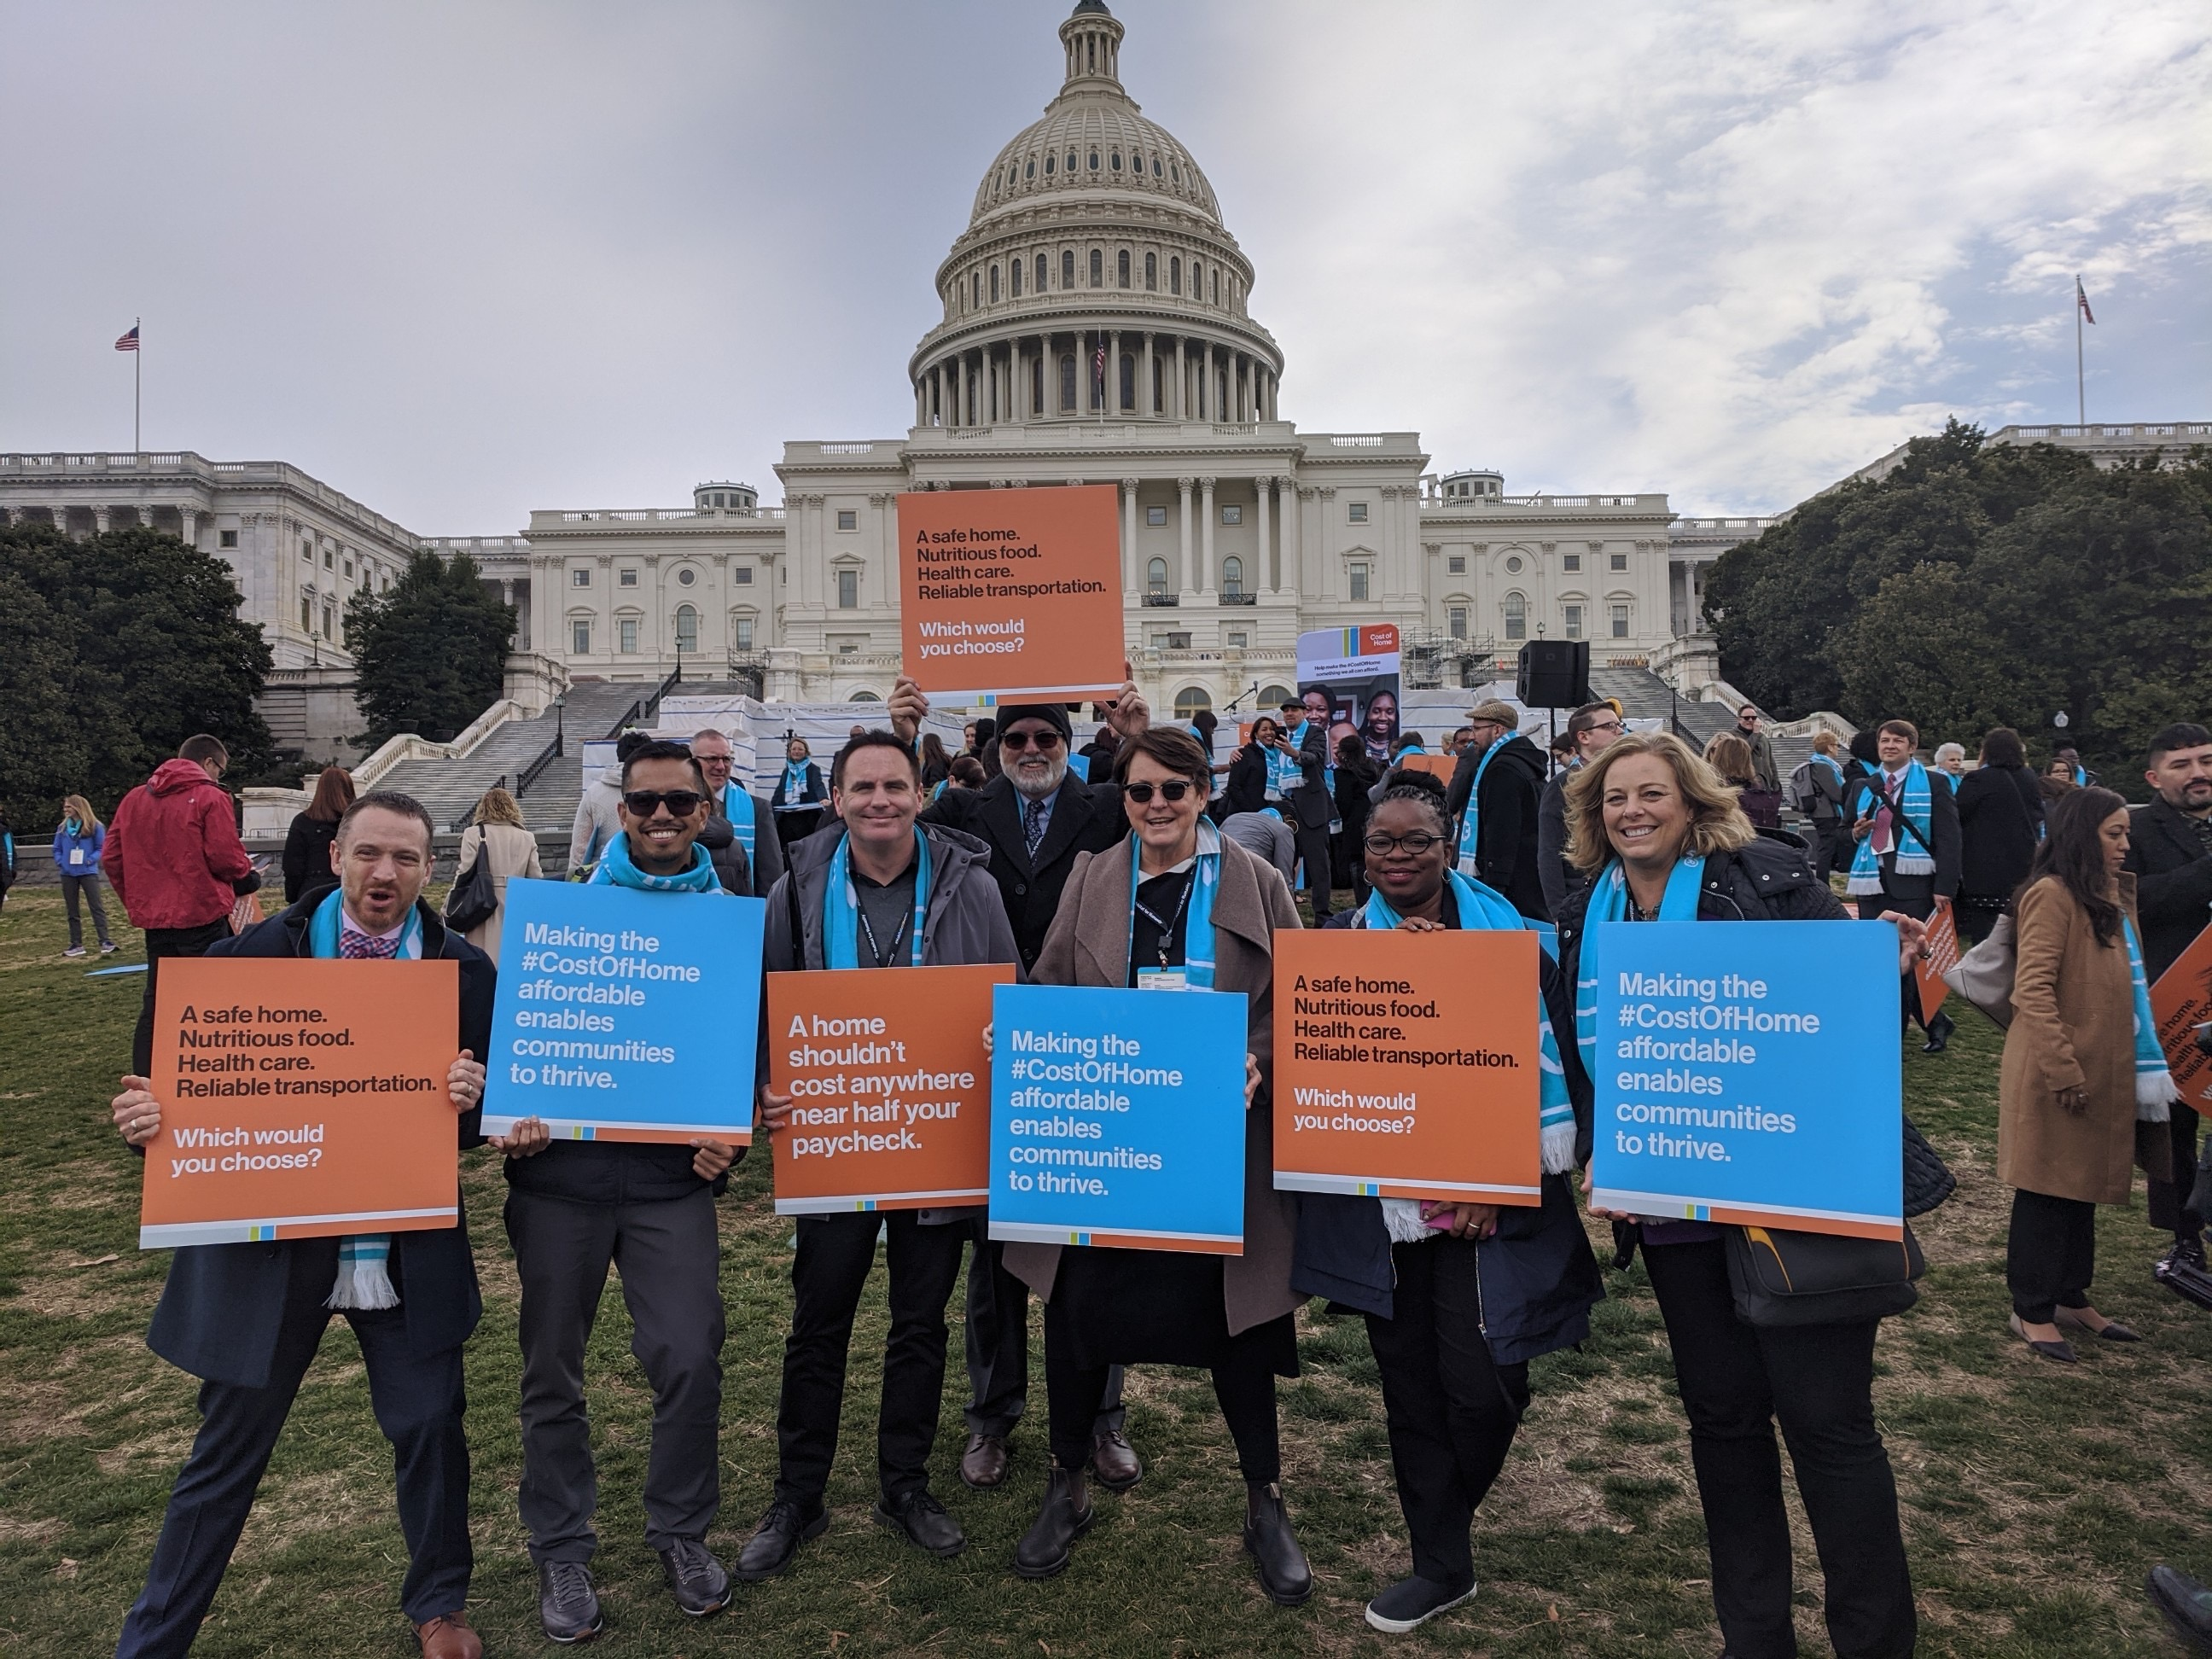 The California Delegation standing and smiling for a group photo while holding signs in front of the Capitol Building.